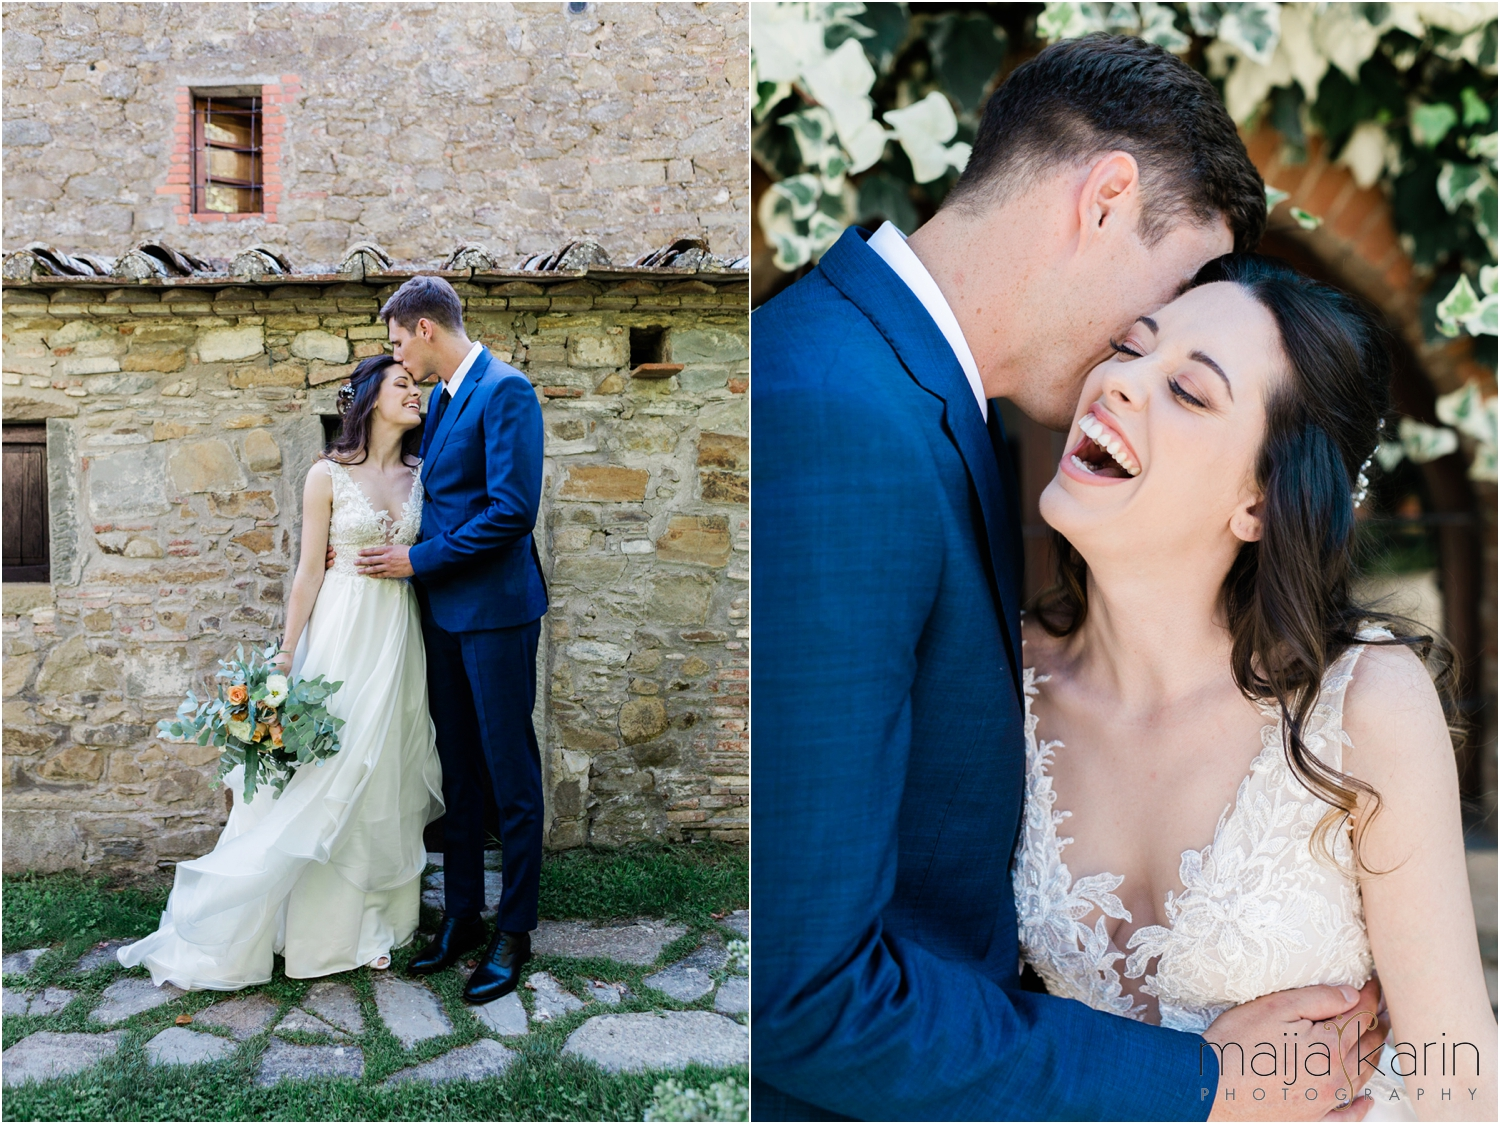 Castelvecchi-Tuscany-Wedding-Maija-Karin-Photography_0021.jpg